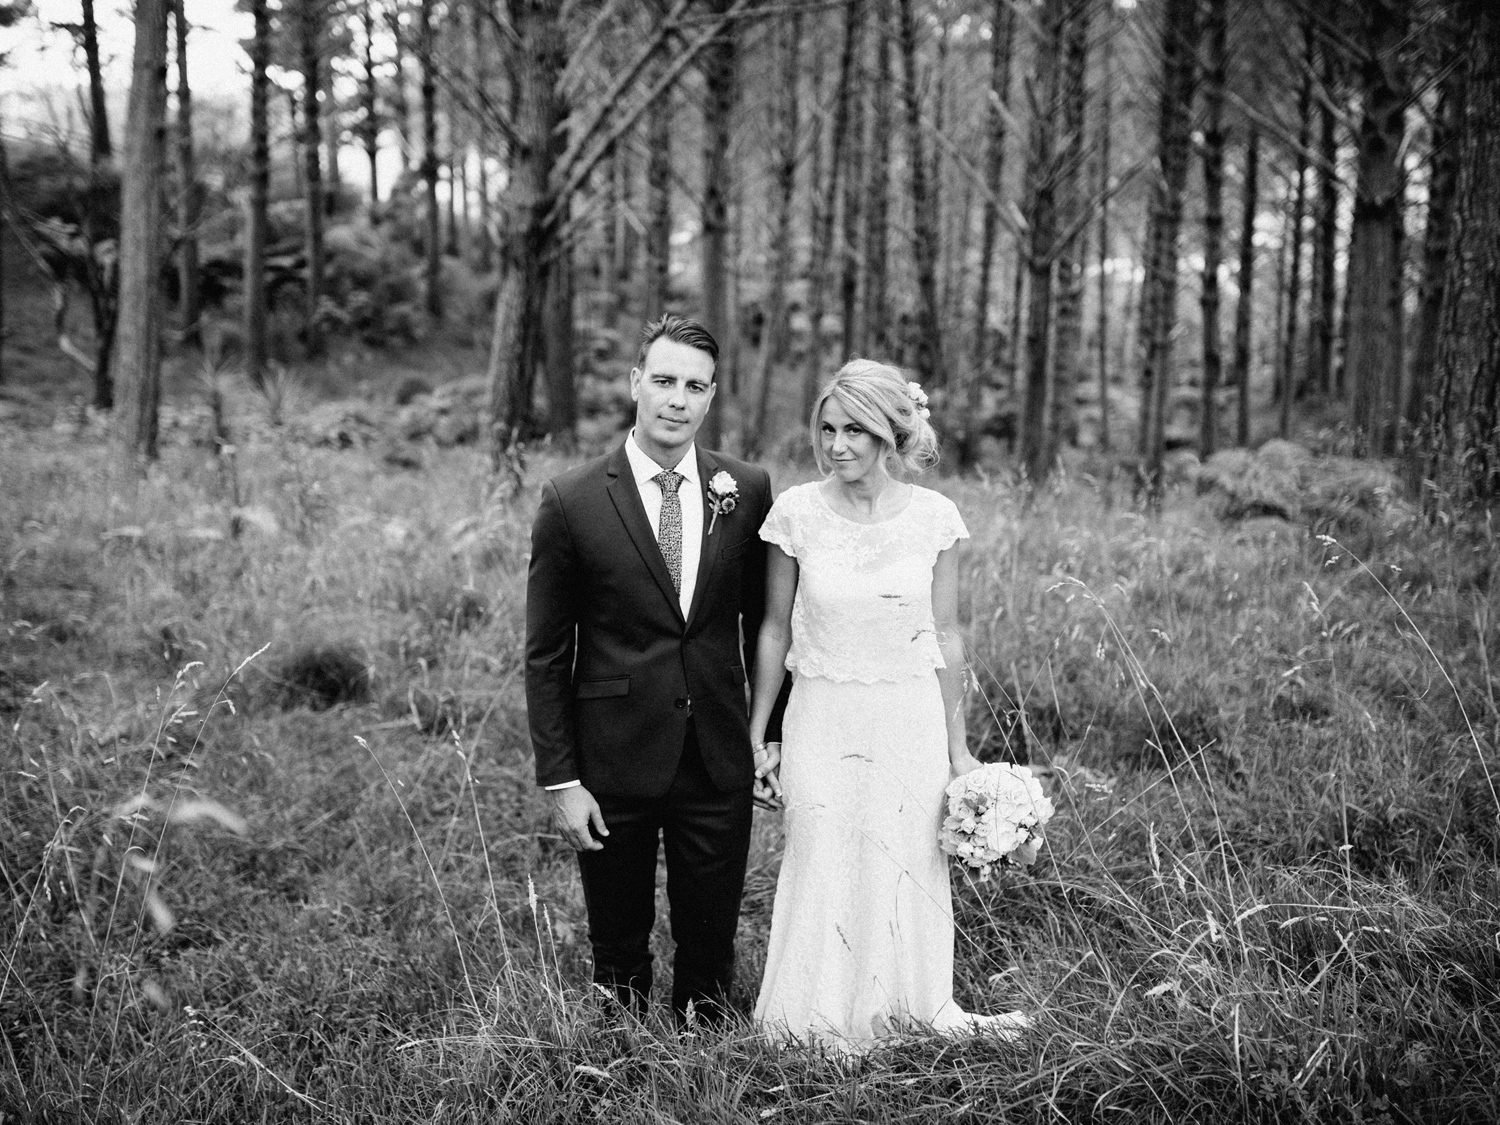 new-zealand-wedding-film-photographer-ryan-flynn-0021.JPG